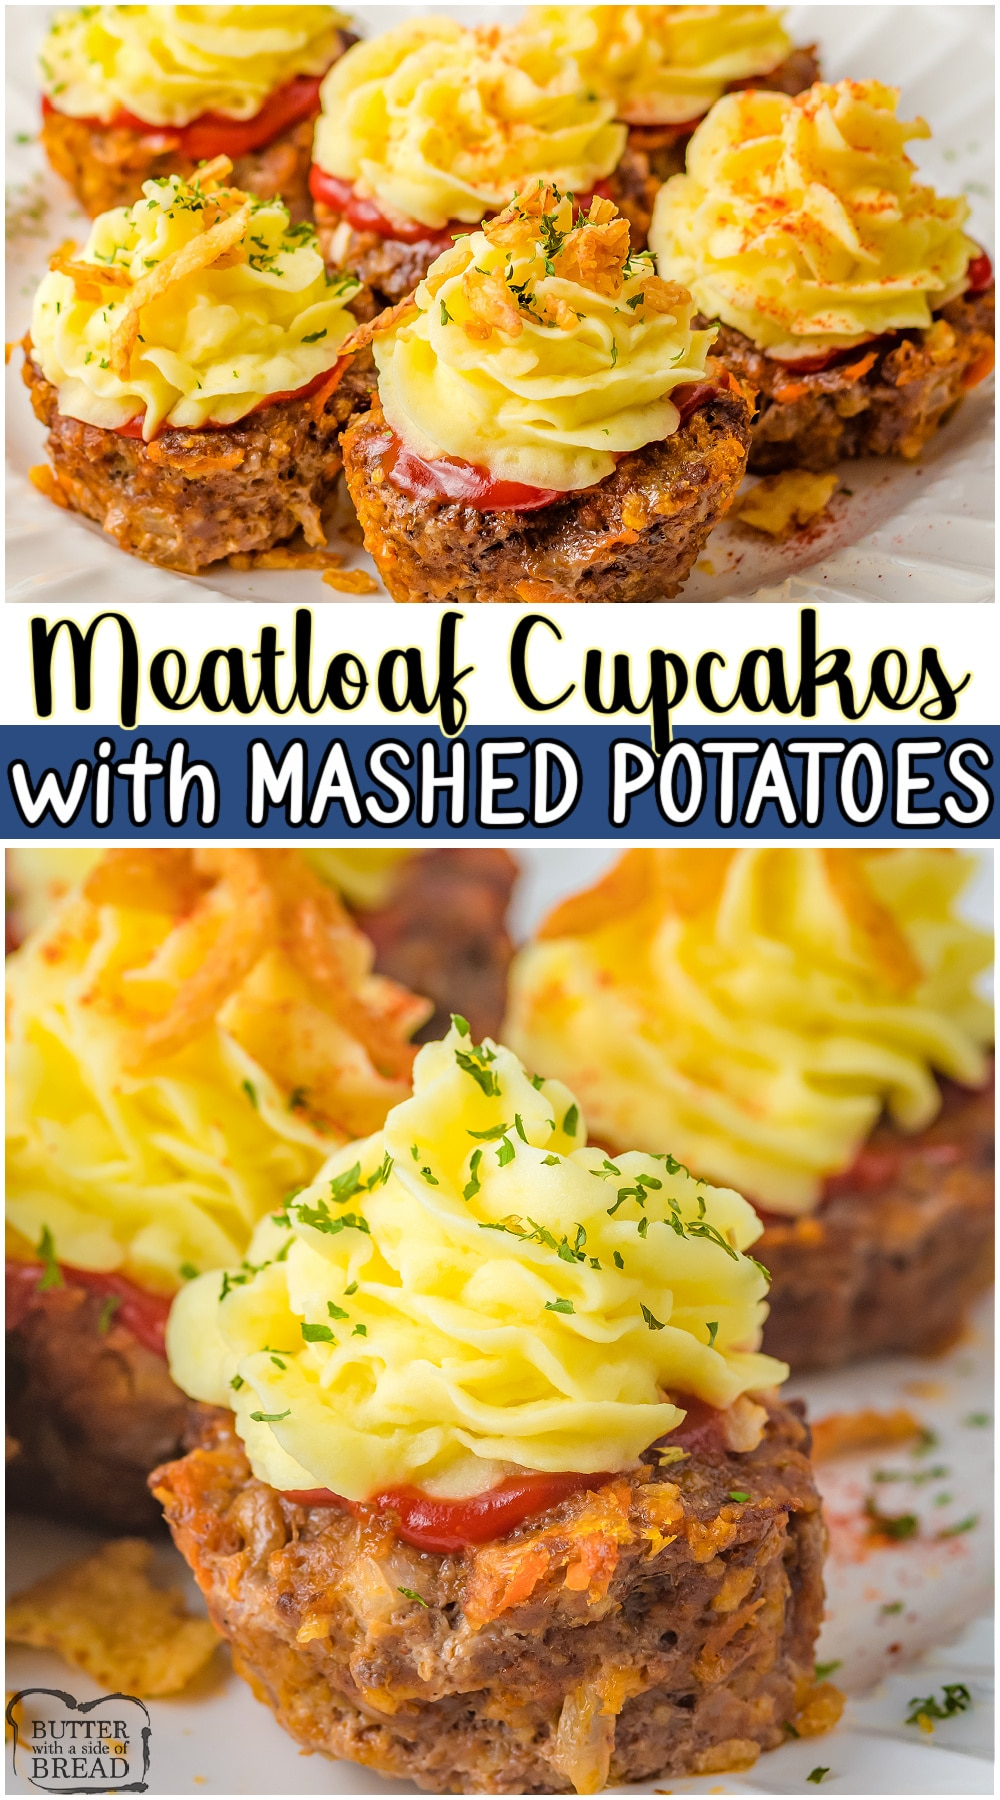 Meatloaf cupcake recipe made with a fantastic blend of ground beef, sausage & savory seasonings, made into mini meatloaves, topped with mashed potatoes! #meatloaf #beef #potatoes #dinner #easyrecipe from BUTTER WITH A SIDE OF BREAD